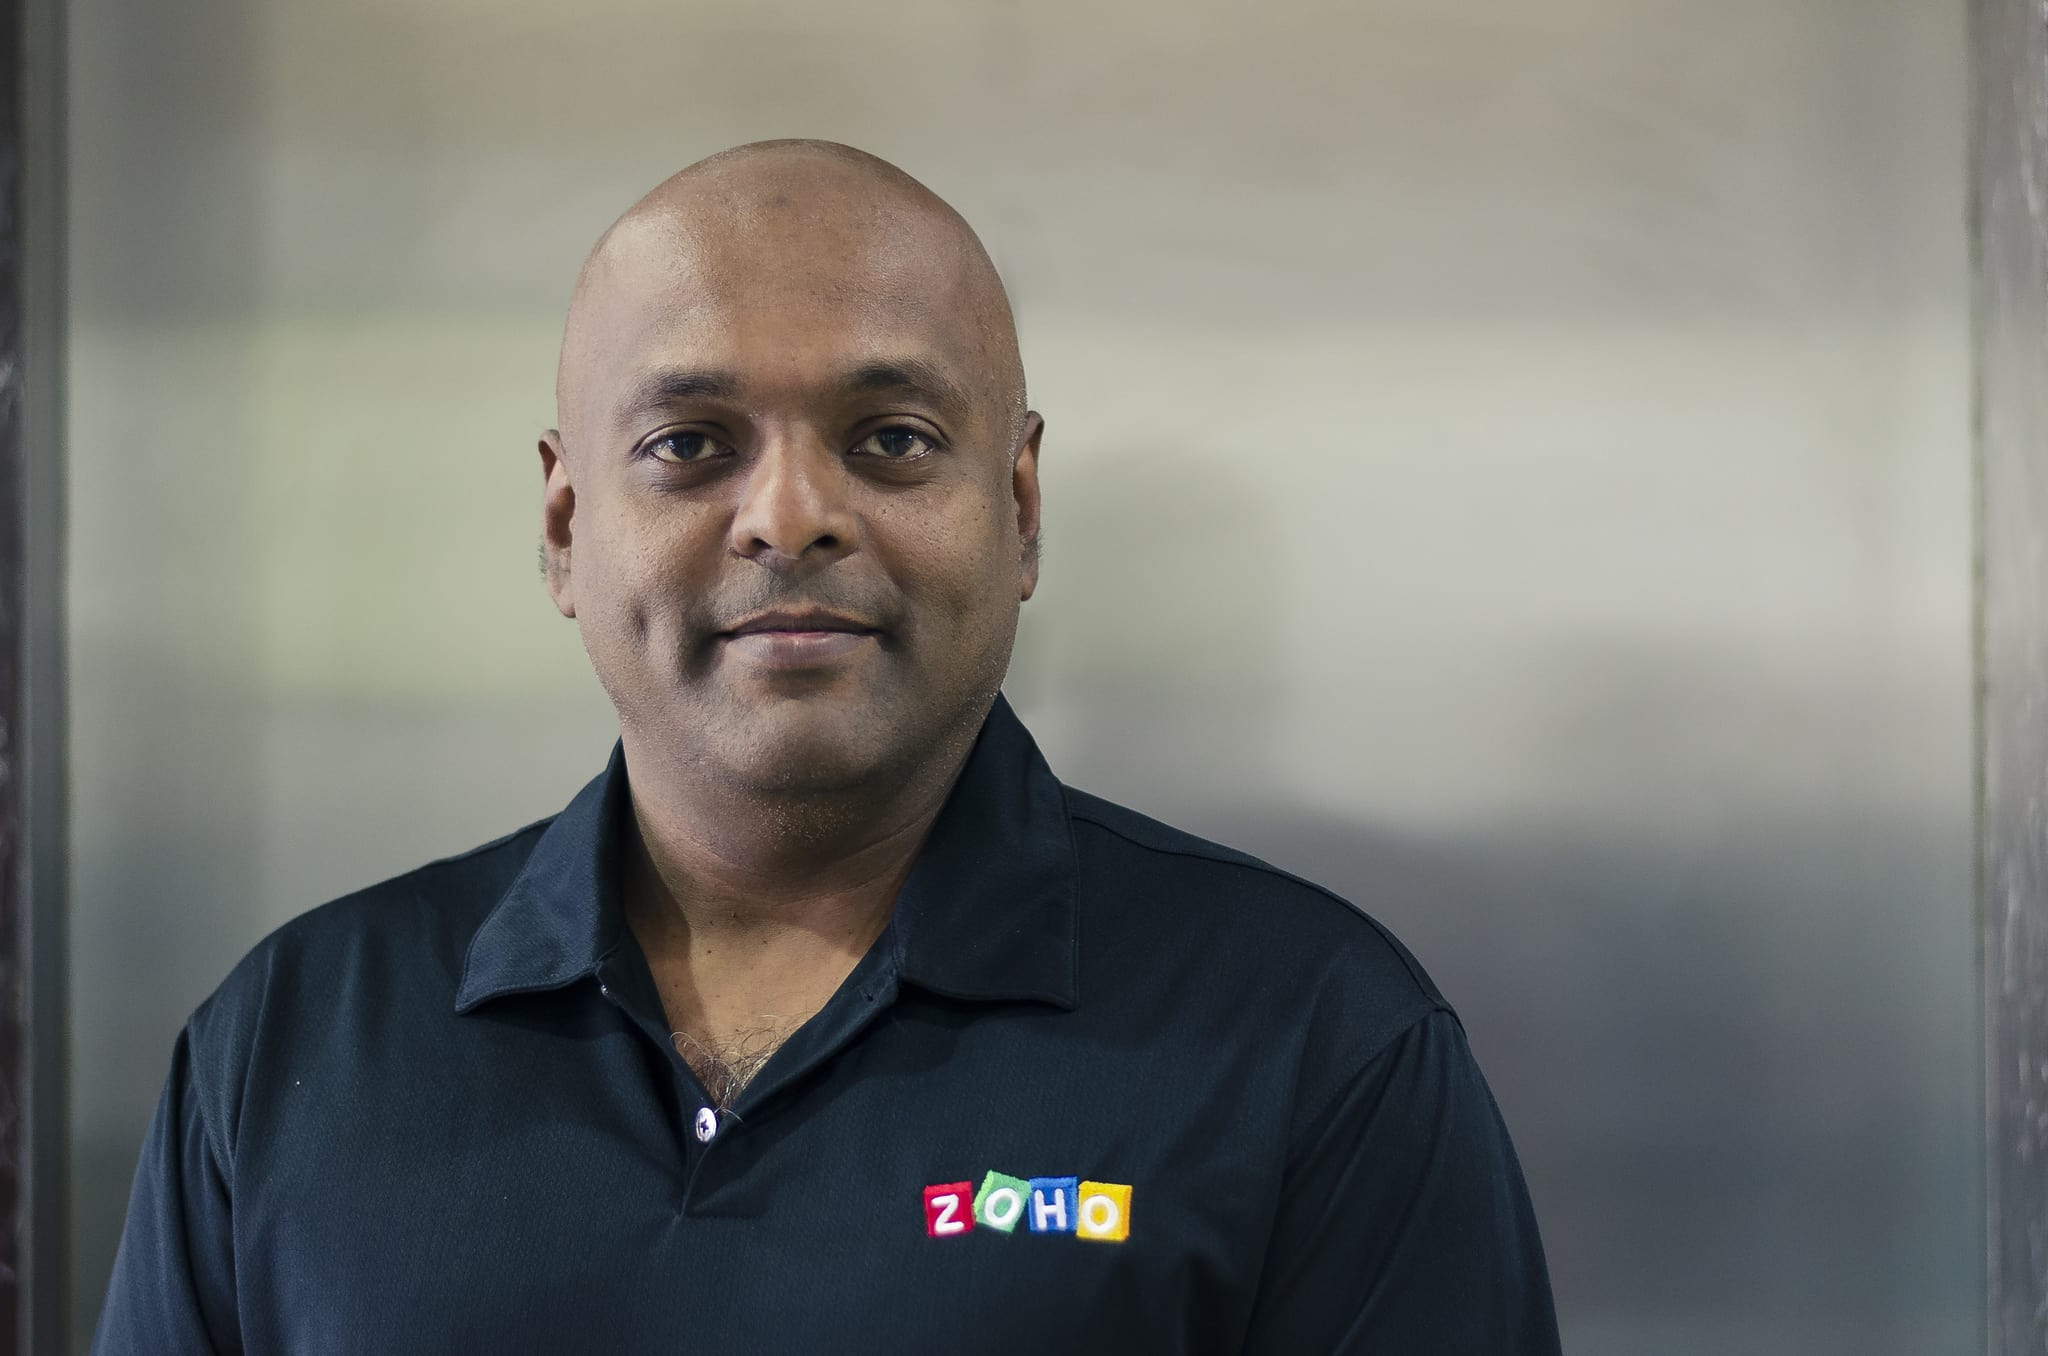 Zoho believes that culture is something you grow from inside